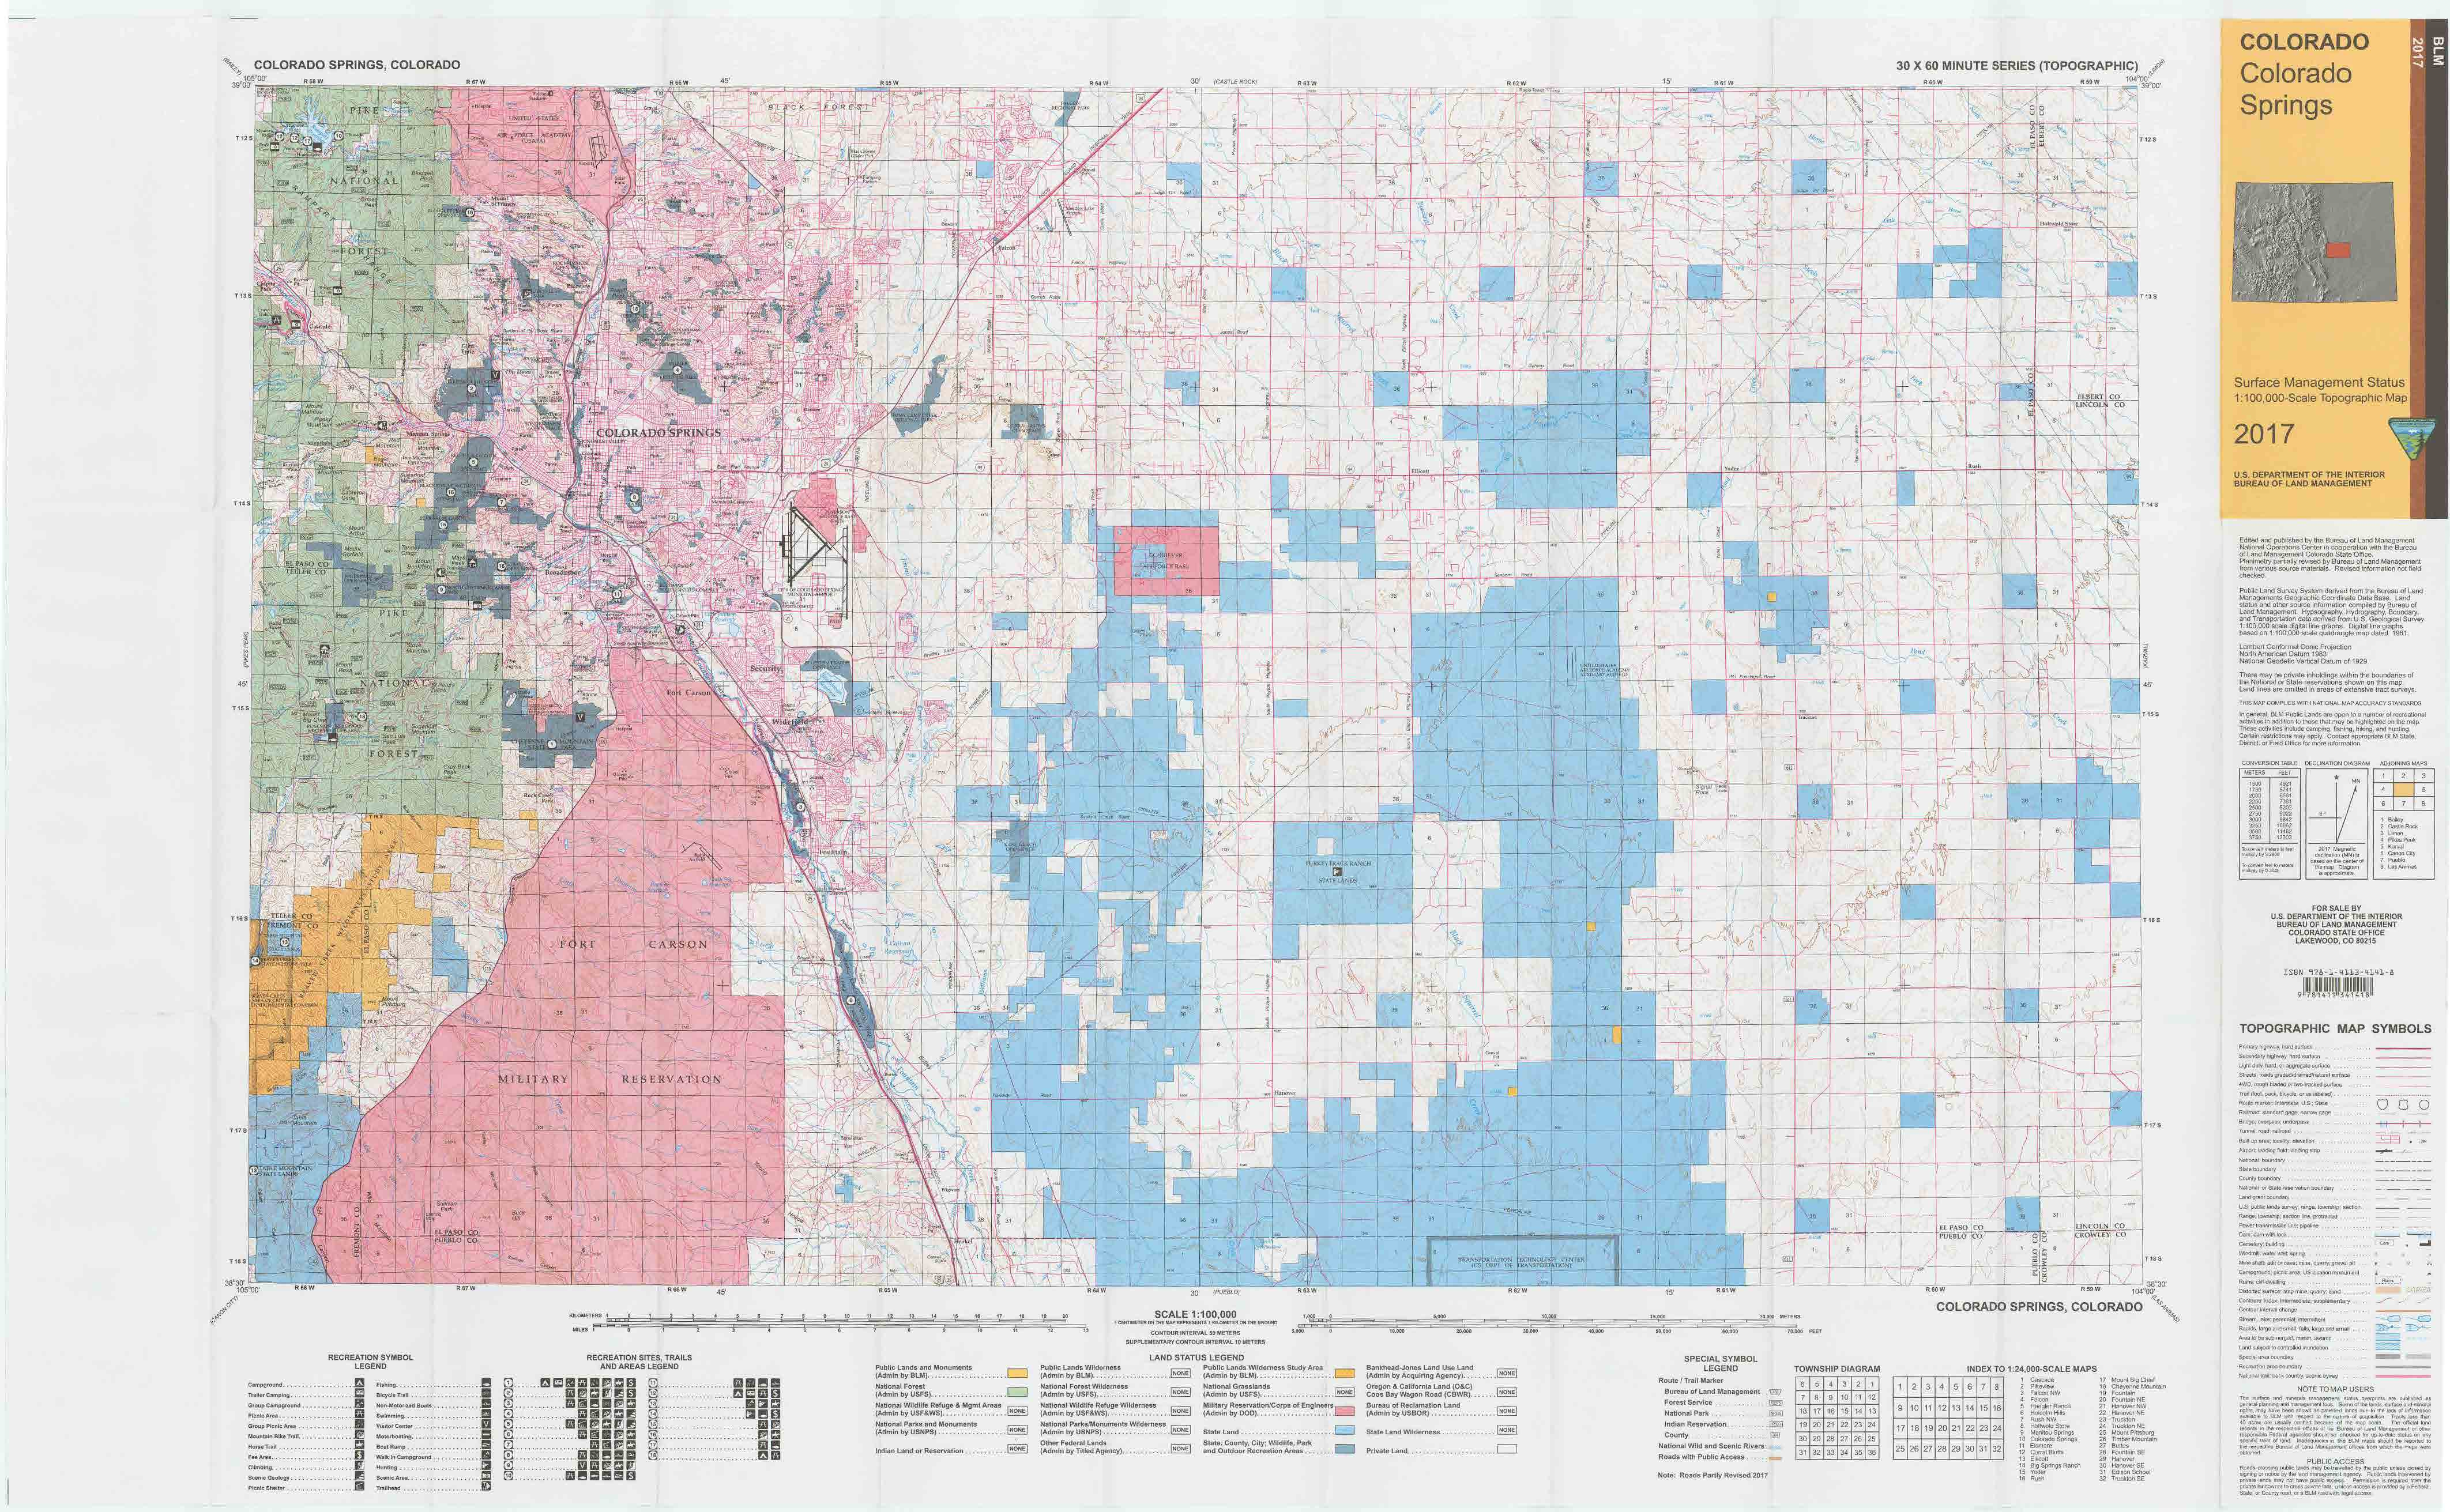 CO Surface Management Status Colorado Springs Map | Bureau of Land on